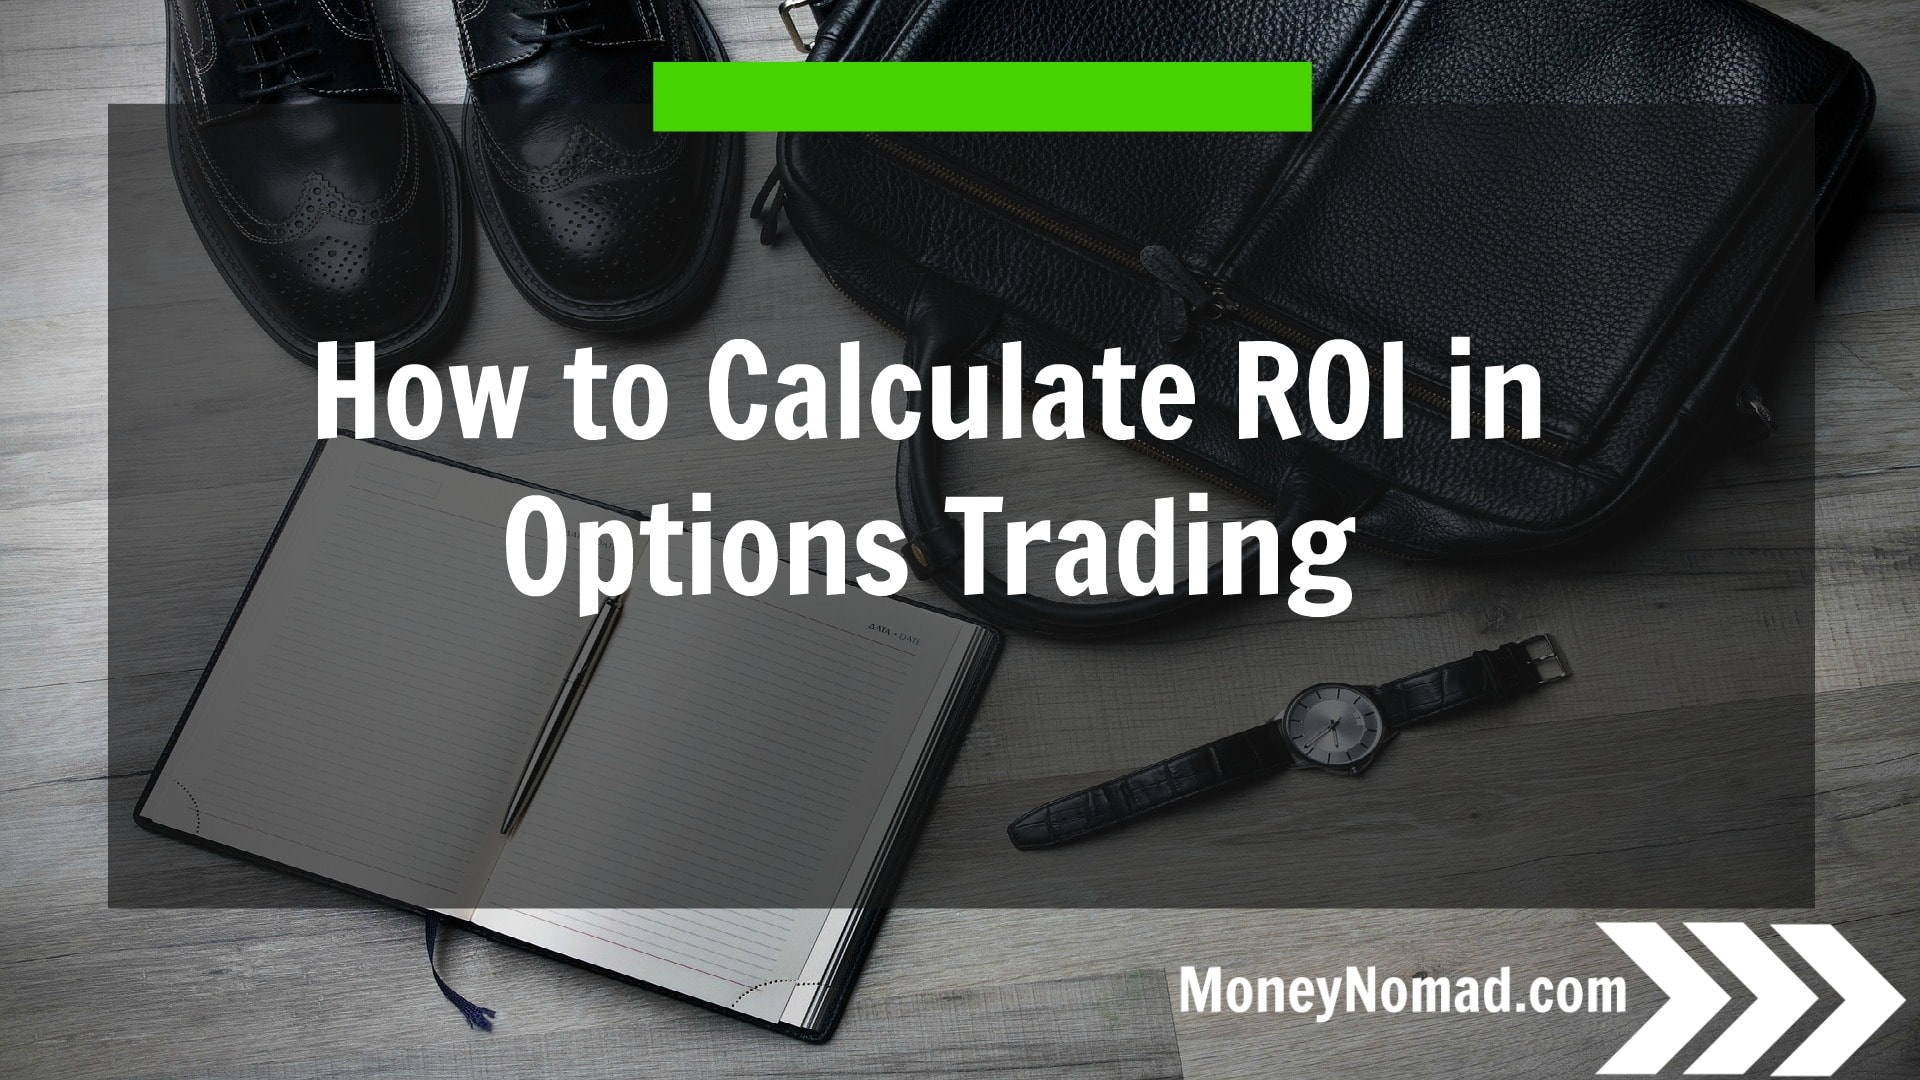 Trading today option calculator